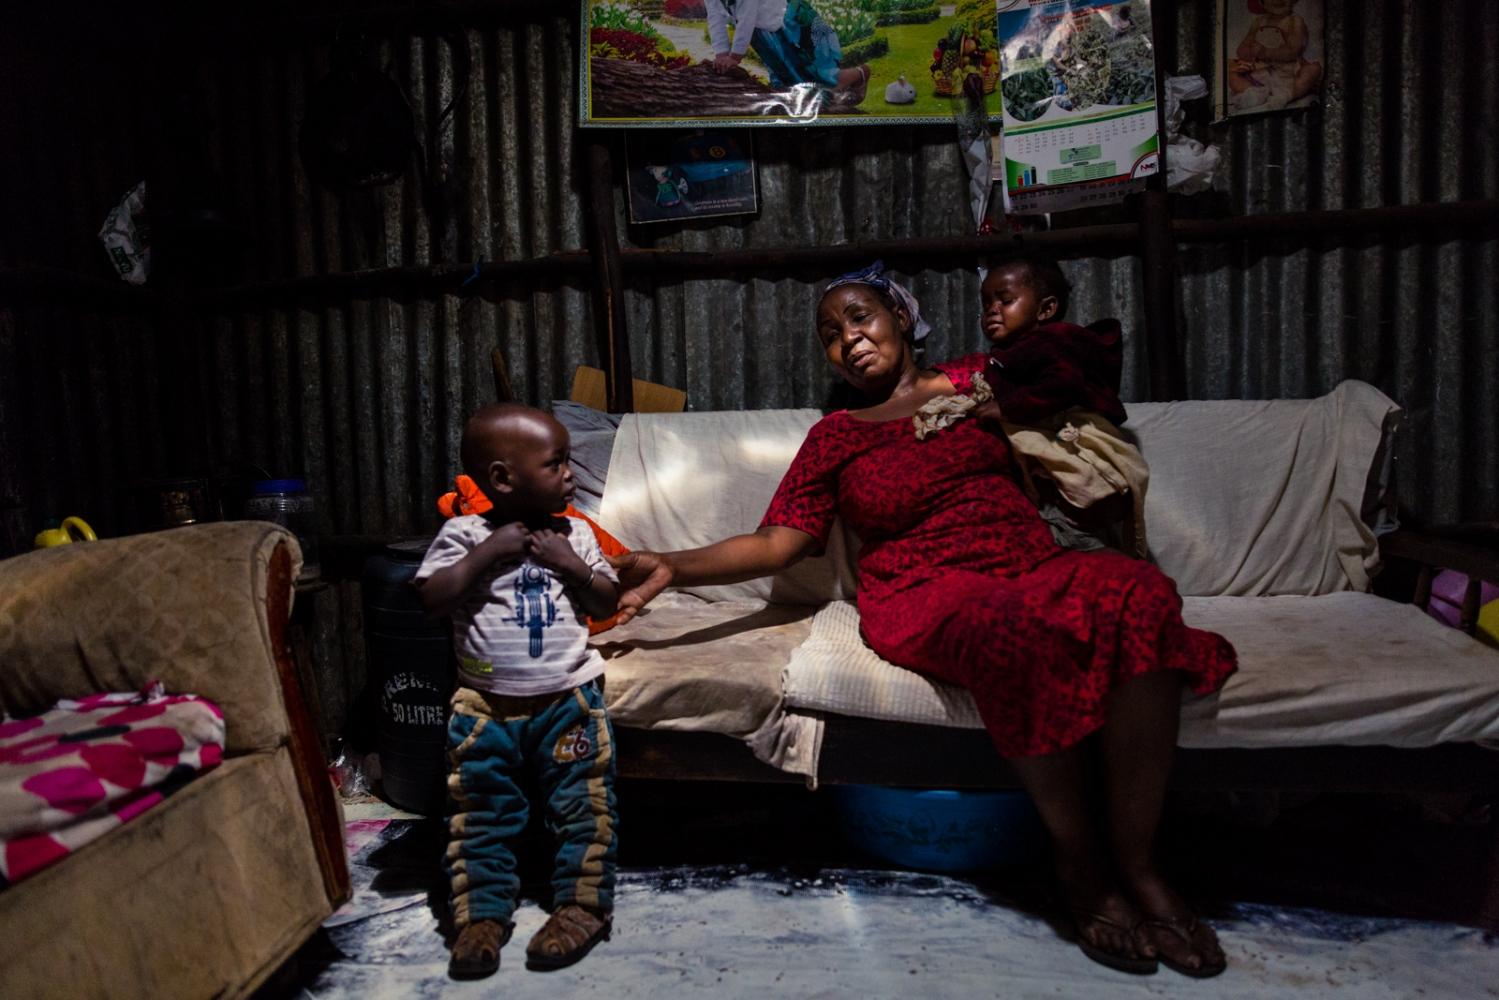 "Nairobi, KENYA, February 20, 2017: Elizabeth Kamau, 60, inside her hut in the Korogocho township with one of her ten grandchildren and the child of her adopted daughter. ""I like being a good role model to children by showing them that a woman can be strong and empowered"", she says. Elizabeth has been training with the 'Shosho Jikinge' (Engl.: 'Grandmother defend yourself') group since five years and has succesfully applied self-defense techniques to fight off potential sexual attackers."